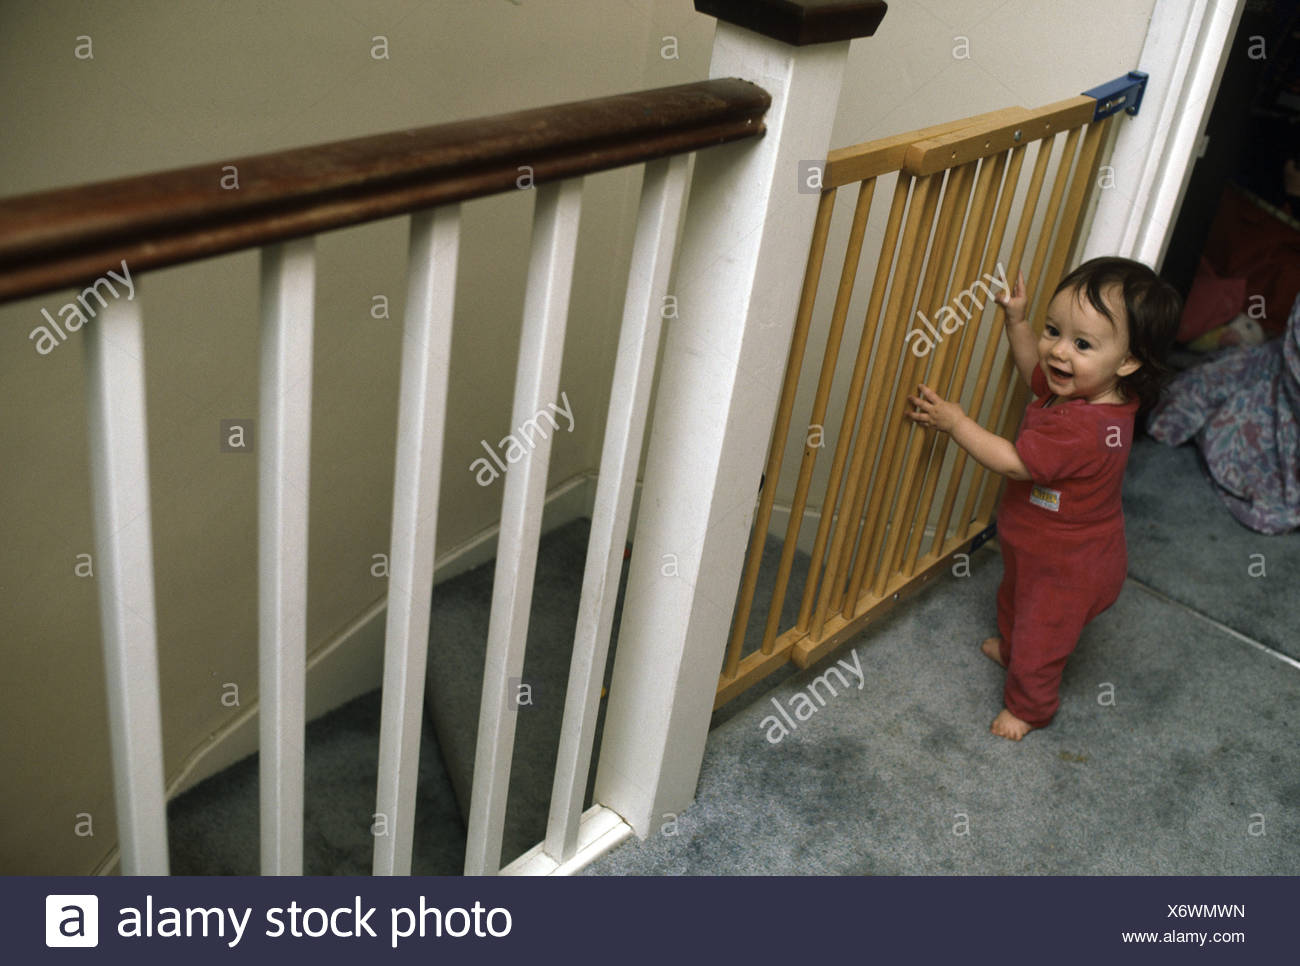 Toddler Standing In Front Of A Stair Gate Leading Down The Stairs